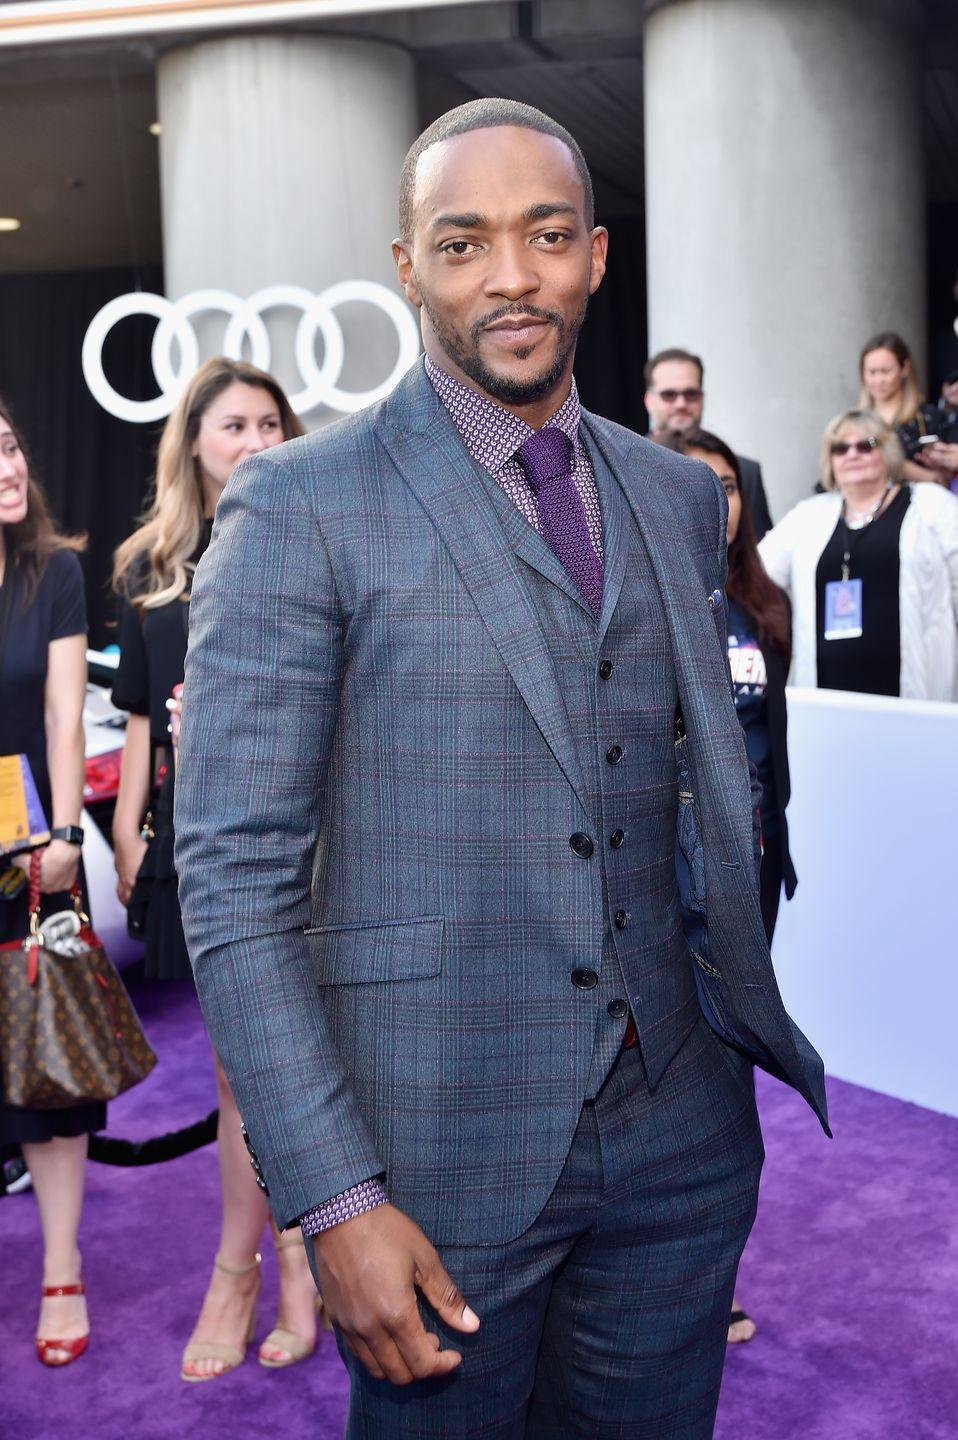 <p>It was announced in 2020 that Anthony Mackie would take over Marvel's <em>Captain America</em> franchise, making him the first Black Captain America. In addition to the Avengers franchise, Mackie has starred in dramas like <em>The Hurt Locker</em> and <em>Million Dollar Baby</em>.</p>